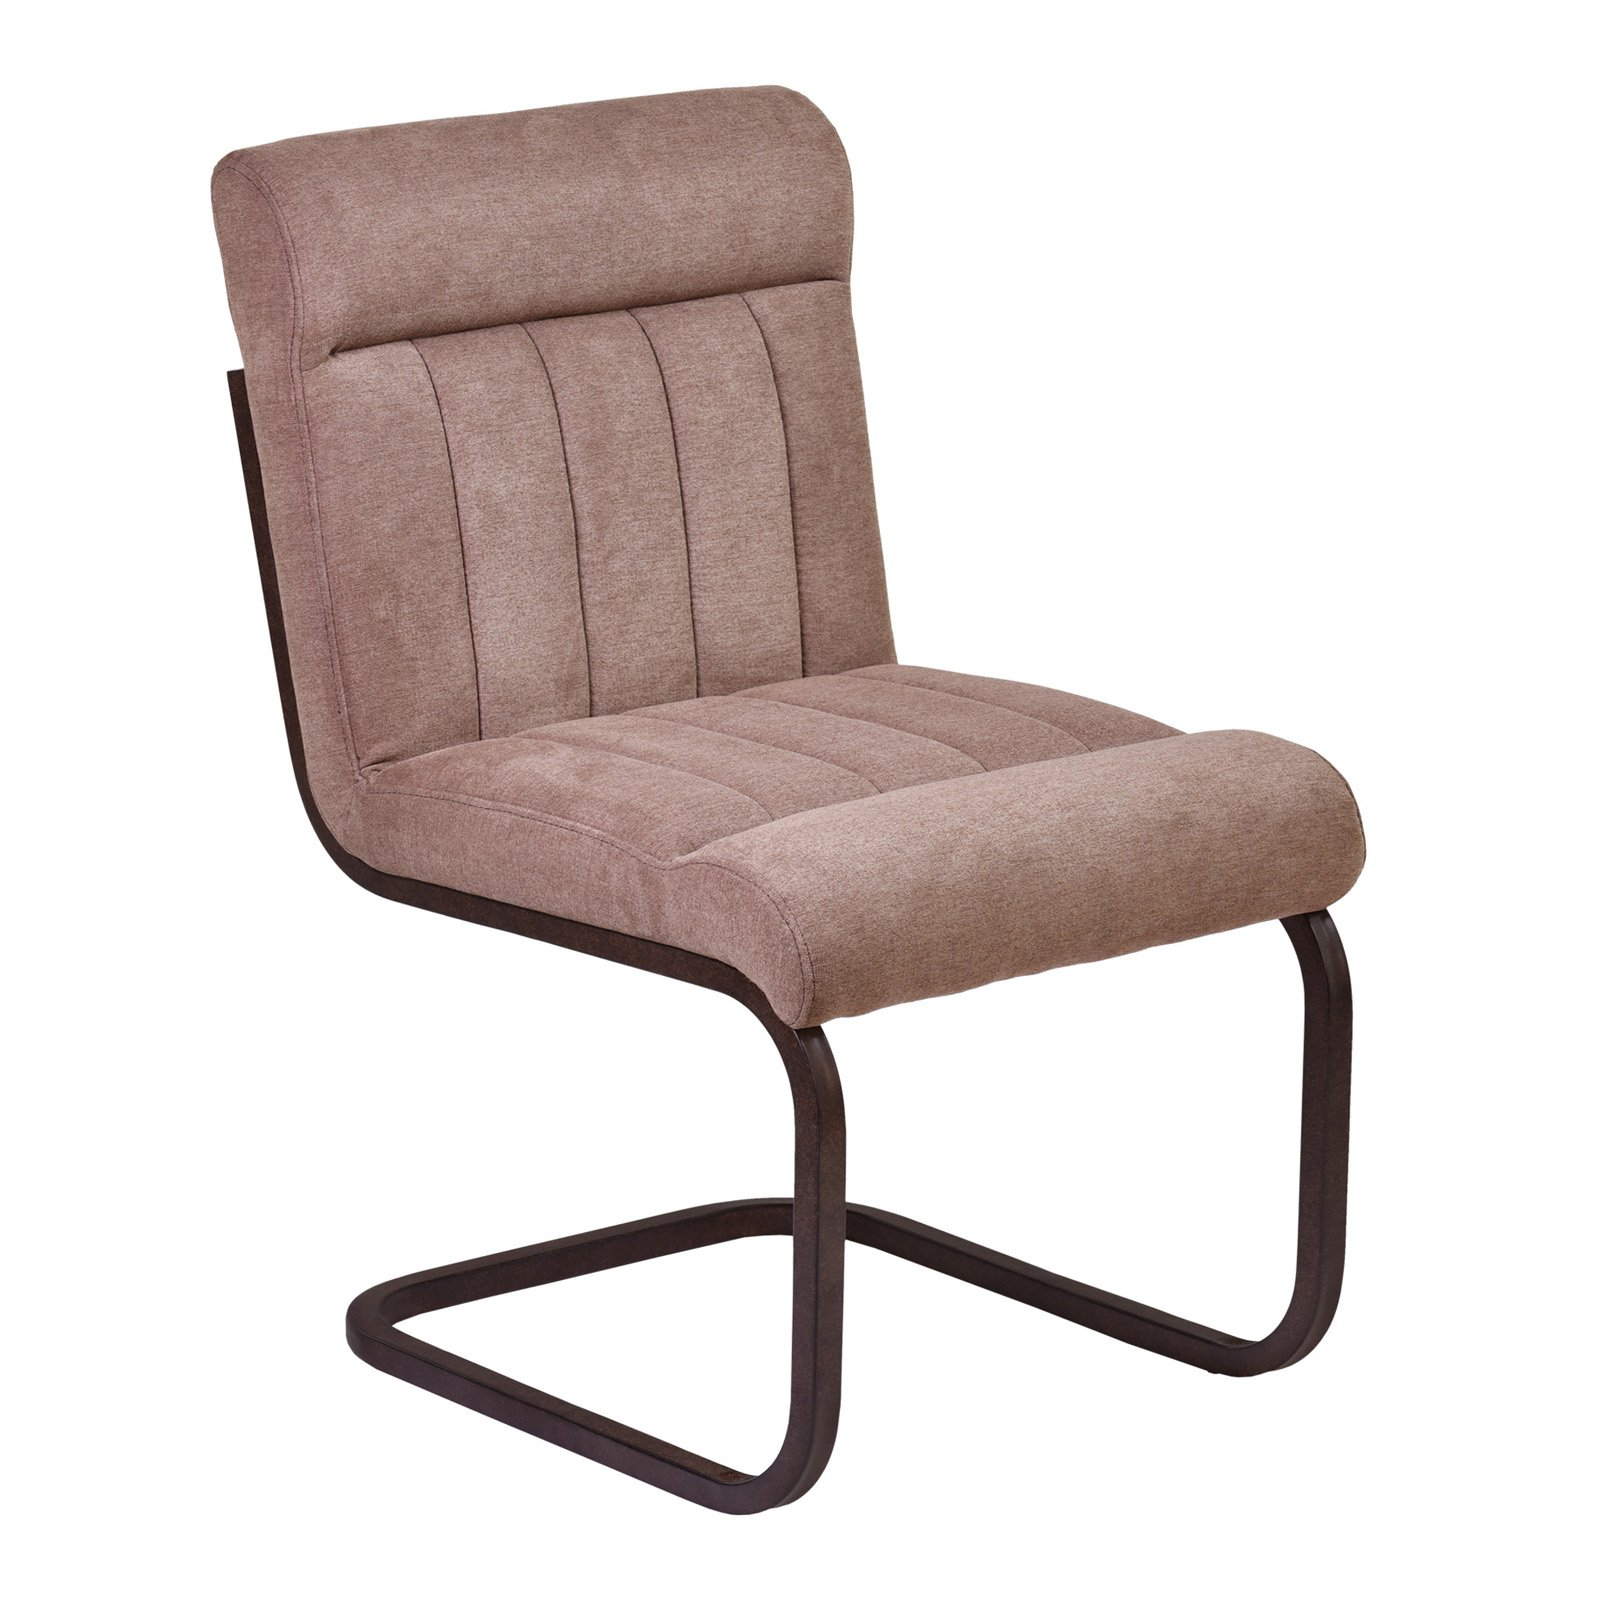 Armen Living Vancouver Metal Side Chair in Auburn Bay and Brown Microfiber (Set of 2) by Armen Living